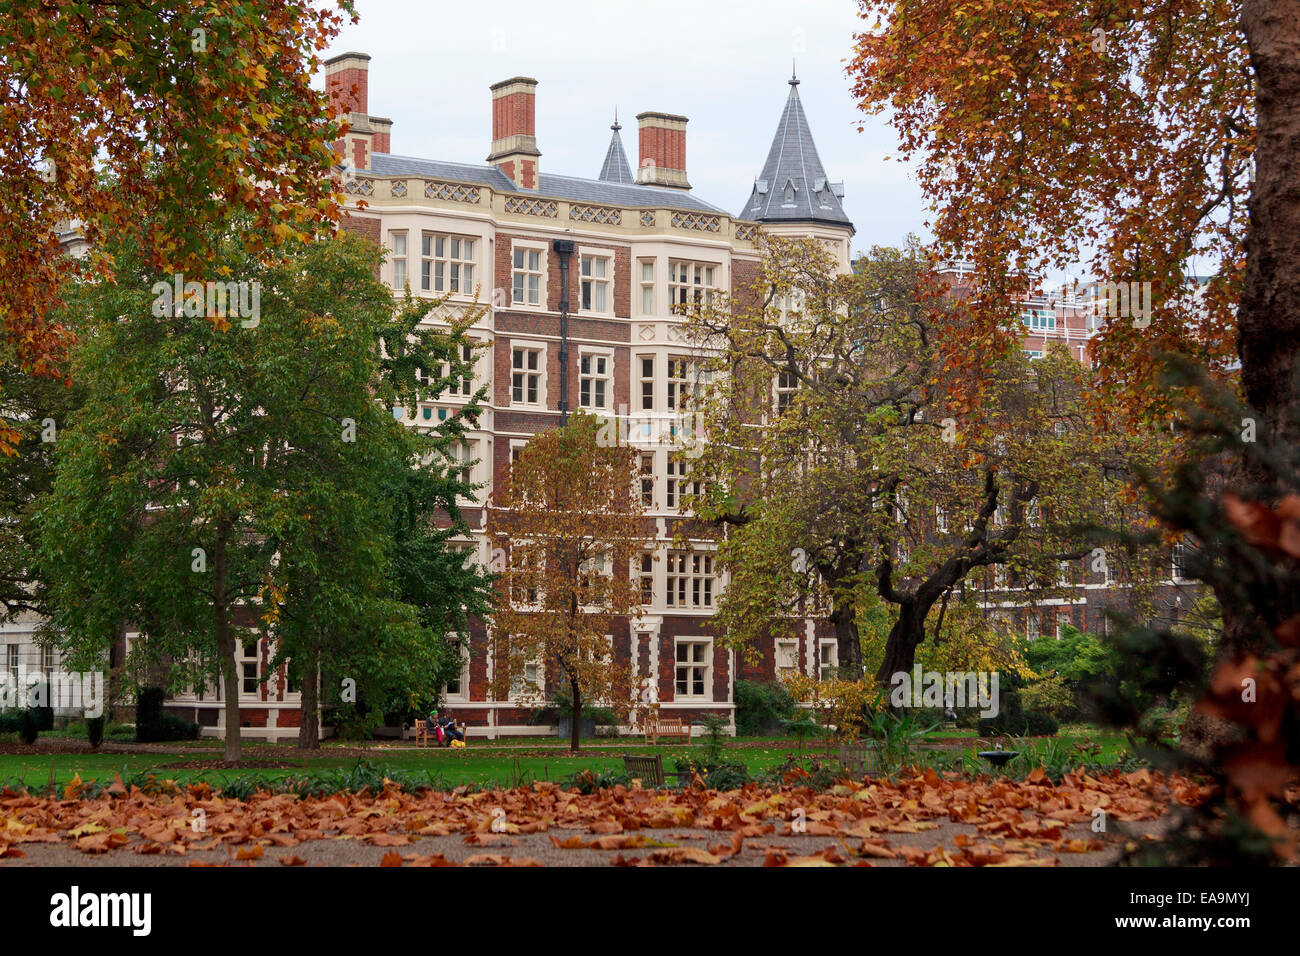 'The Temple' - home of two of the four Inns of Court of the English legal system. - Stock Image